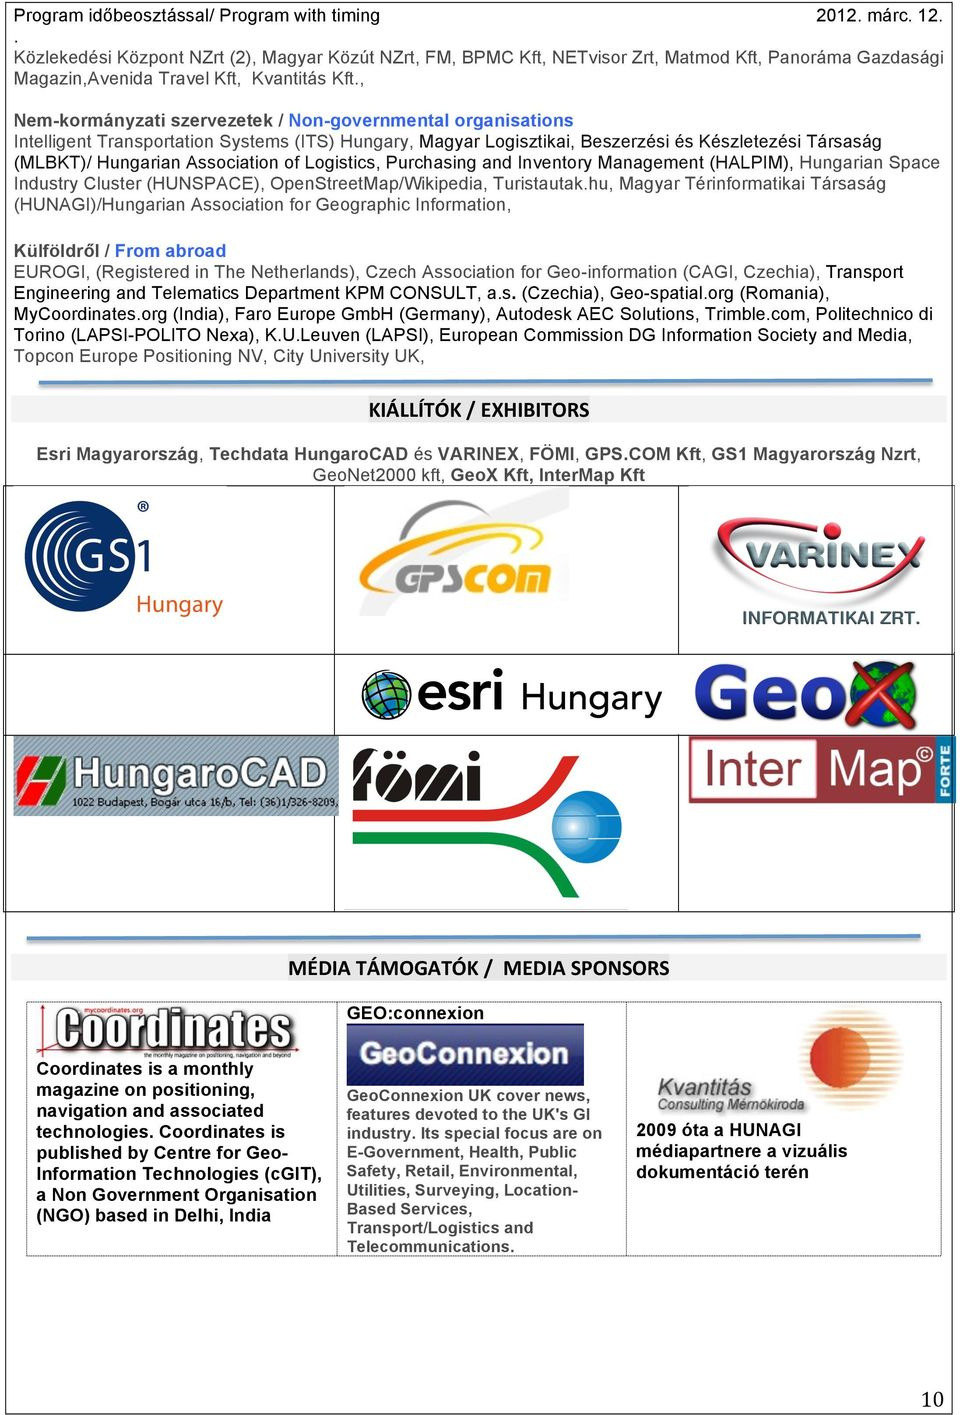 Hungarian Association of Logistics, Purchasing and Inventory Management (HALPIM), Hungarian Space Industry Cluster (HUNSPACE), OpenStreetMap/Wikipedia, Turistautakhu, Magyar Térinformatikai Társaság